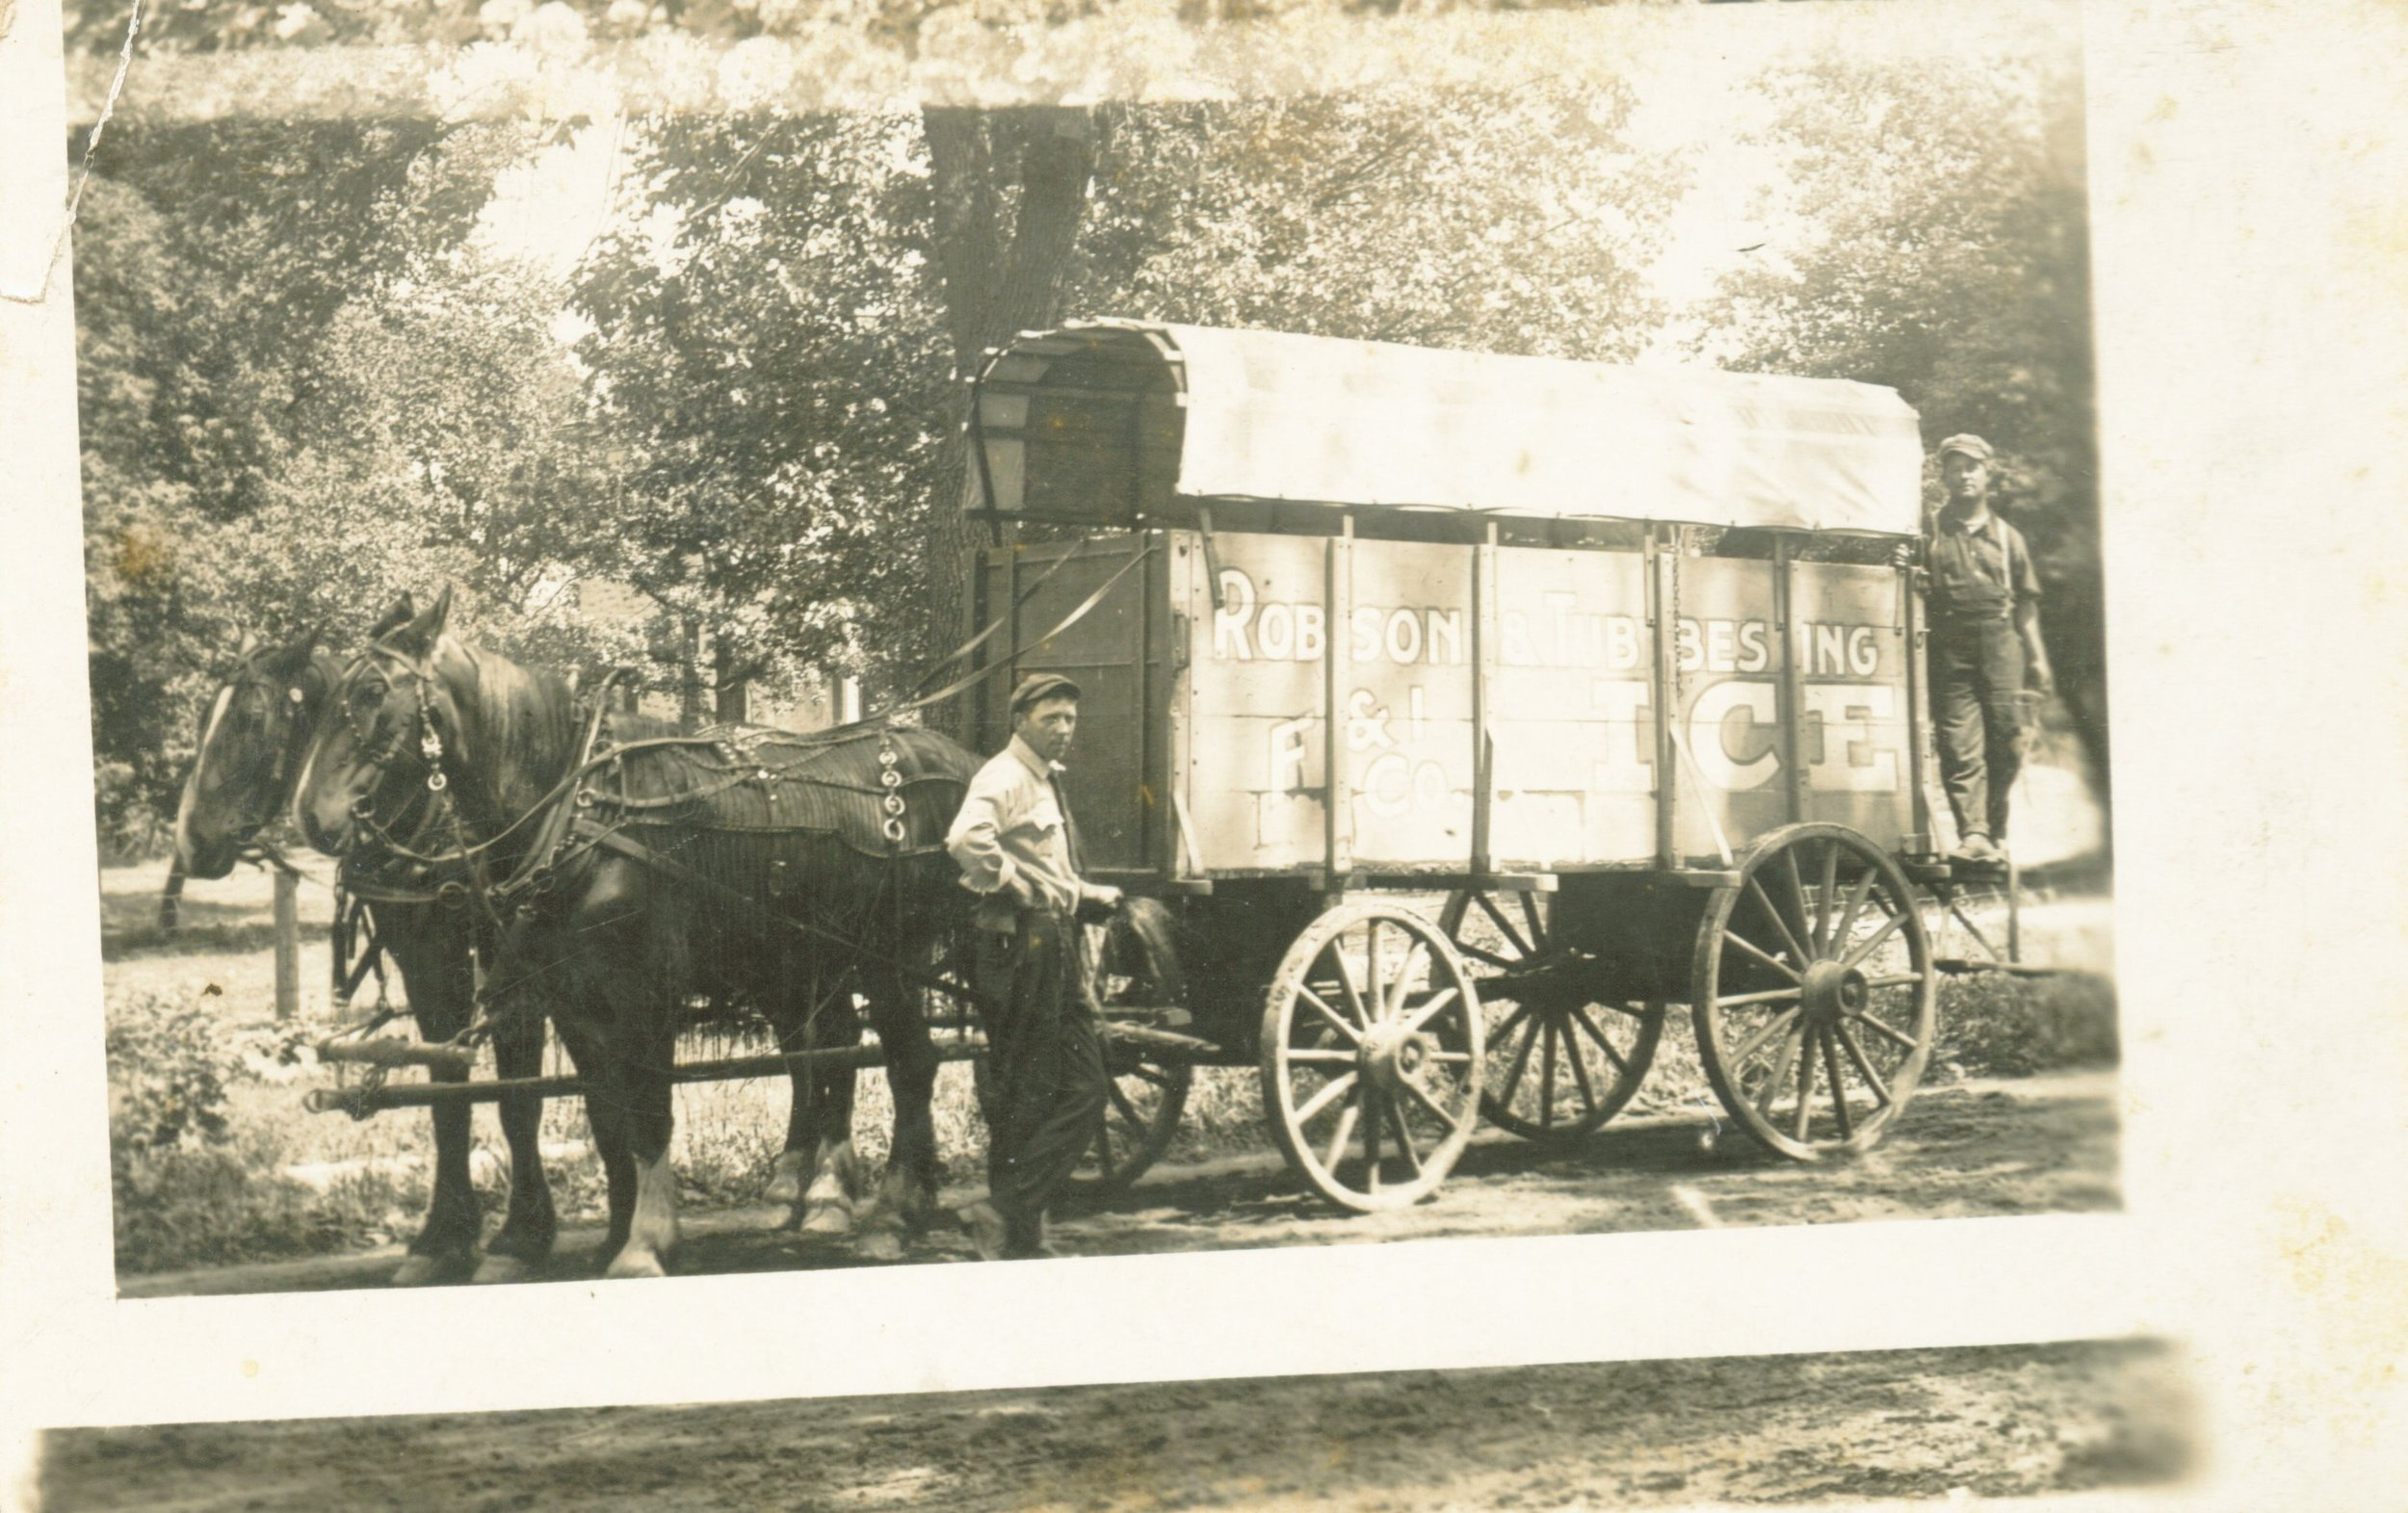 """This is a photo of two horses pulling an ice wagon, which is mounted on four wooden wheels. One man is standing near the front of the wagon, and another standing on a back platform. The sign on the side reads """"Robson & Tubbesing ICE. F & I Co."""" (object ID 2507P.16.2.28; from the Jeanette Magnuson Photo Collection)."""